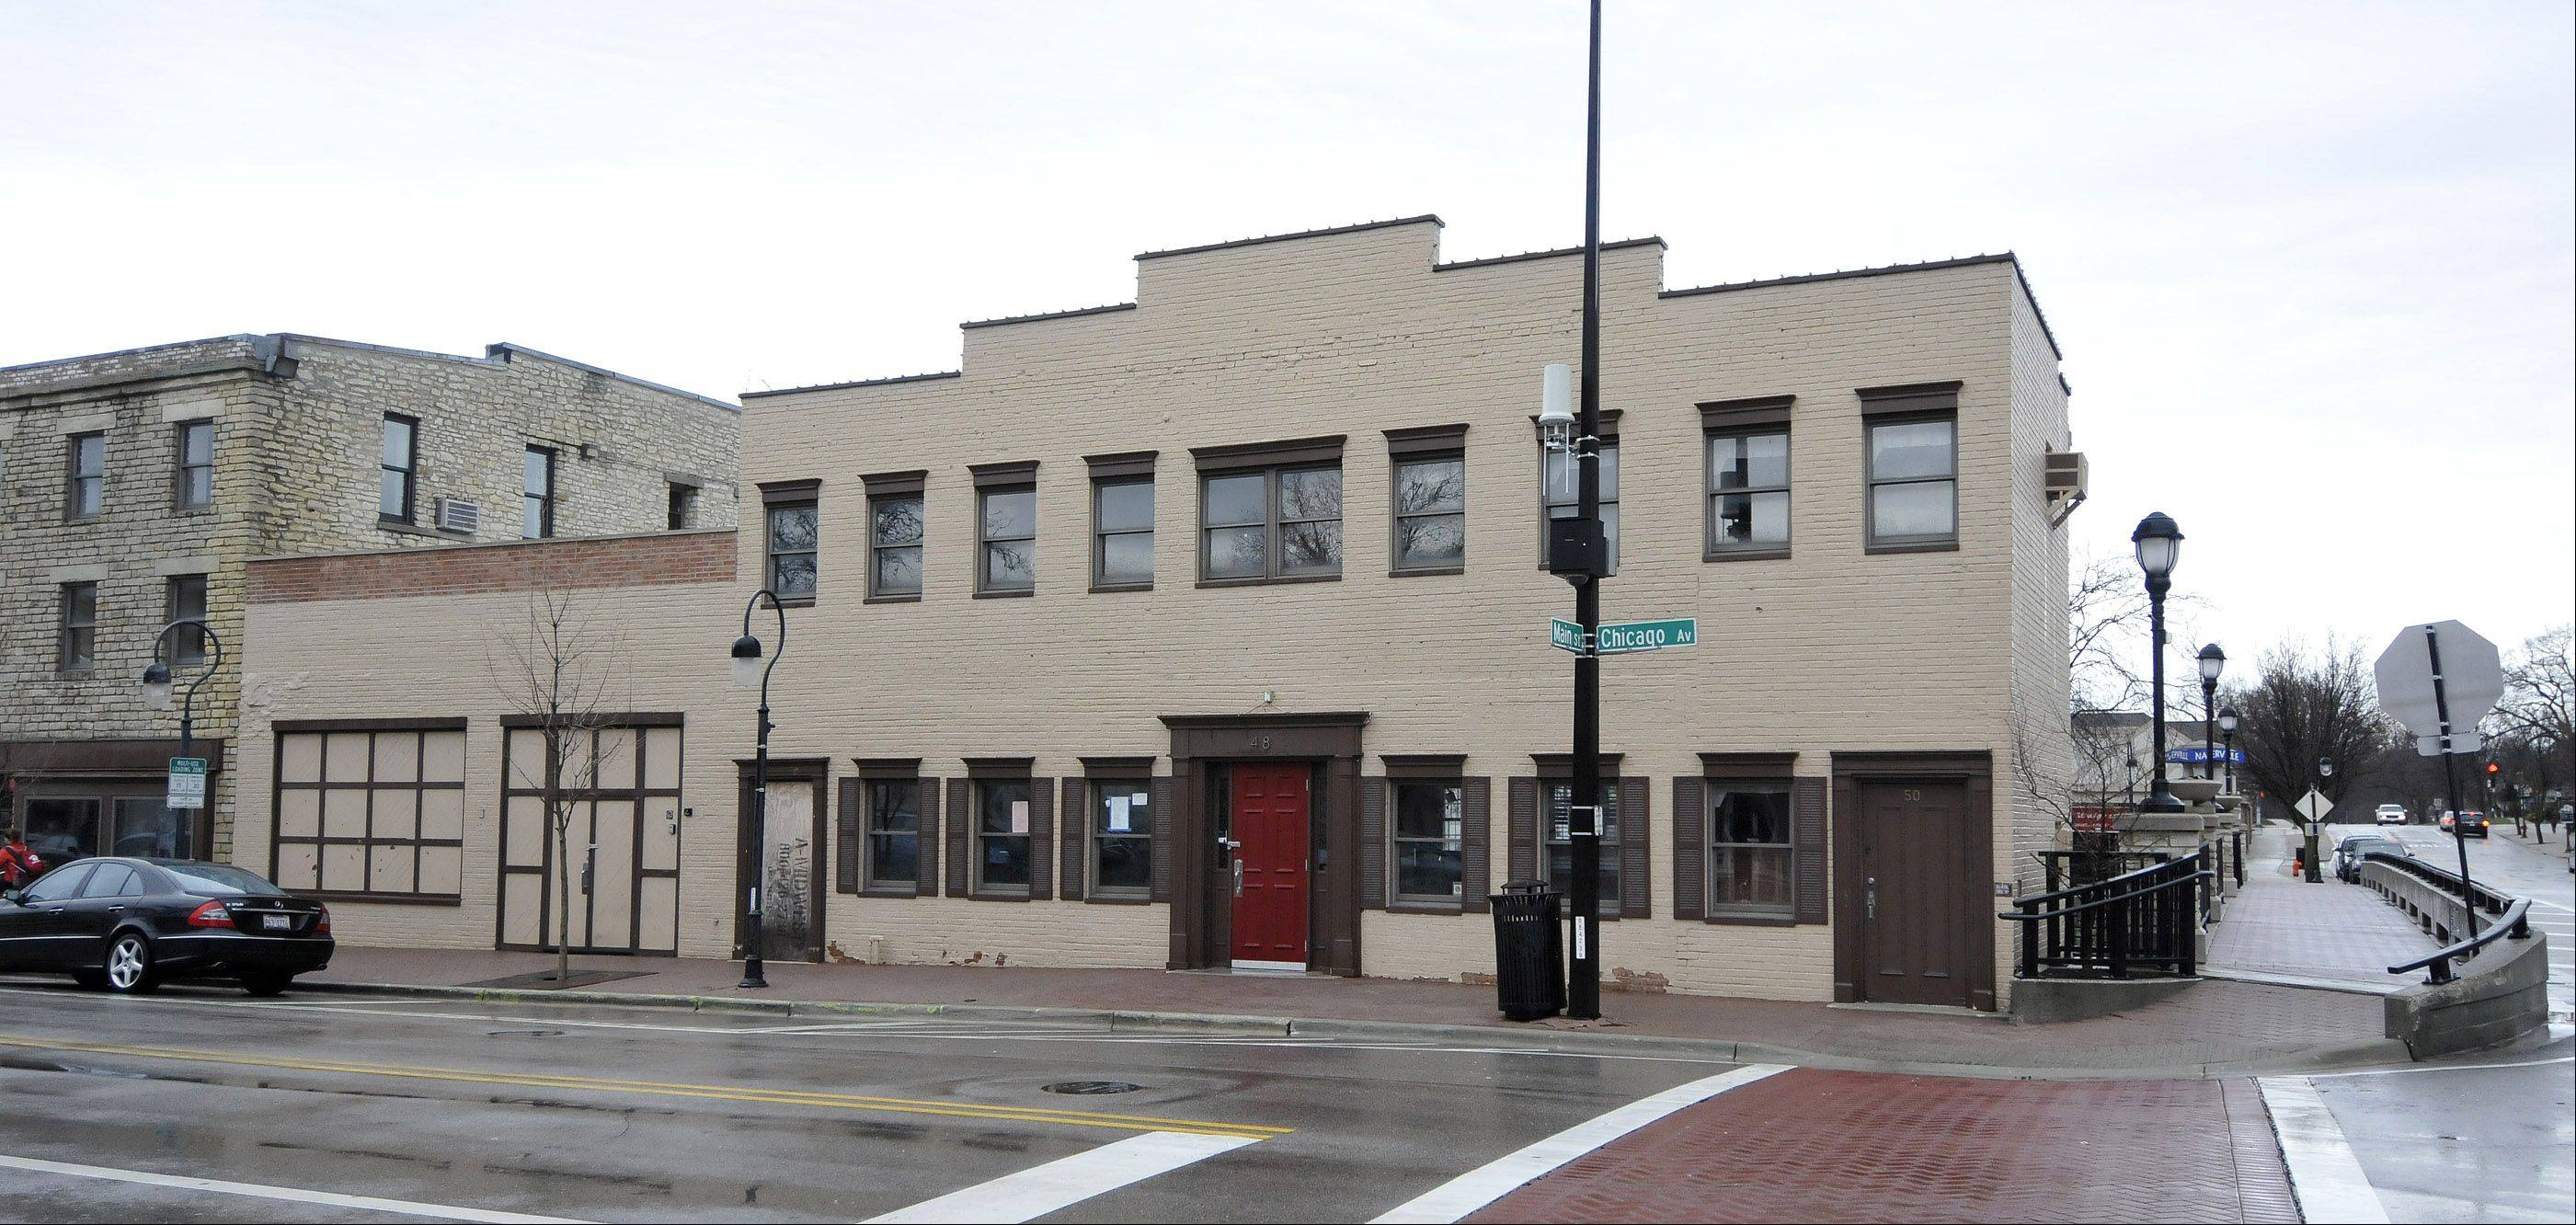 Naperville City Council members have decided to allow a new late-night liquor permit to allow Ballydoyle to open in the old Rosebud restaurant location at Chicago Avenue and Main Street.